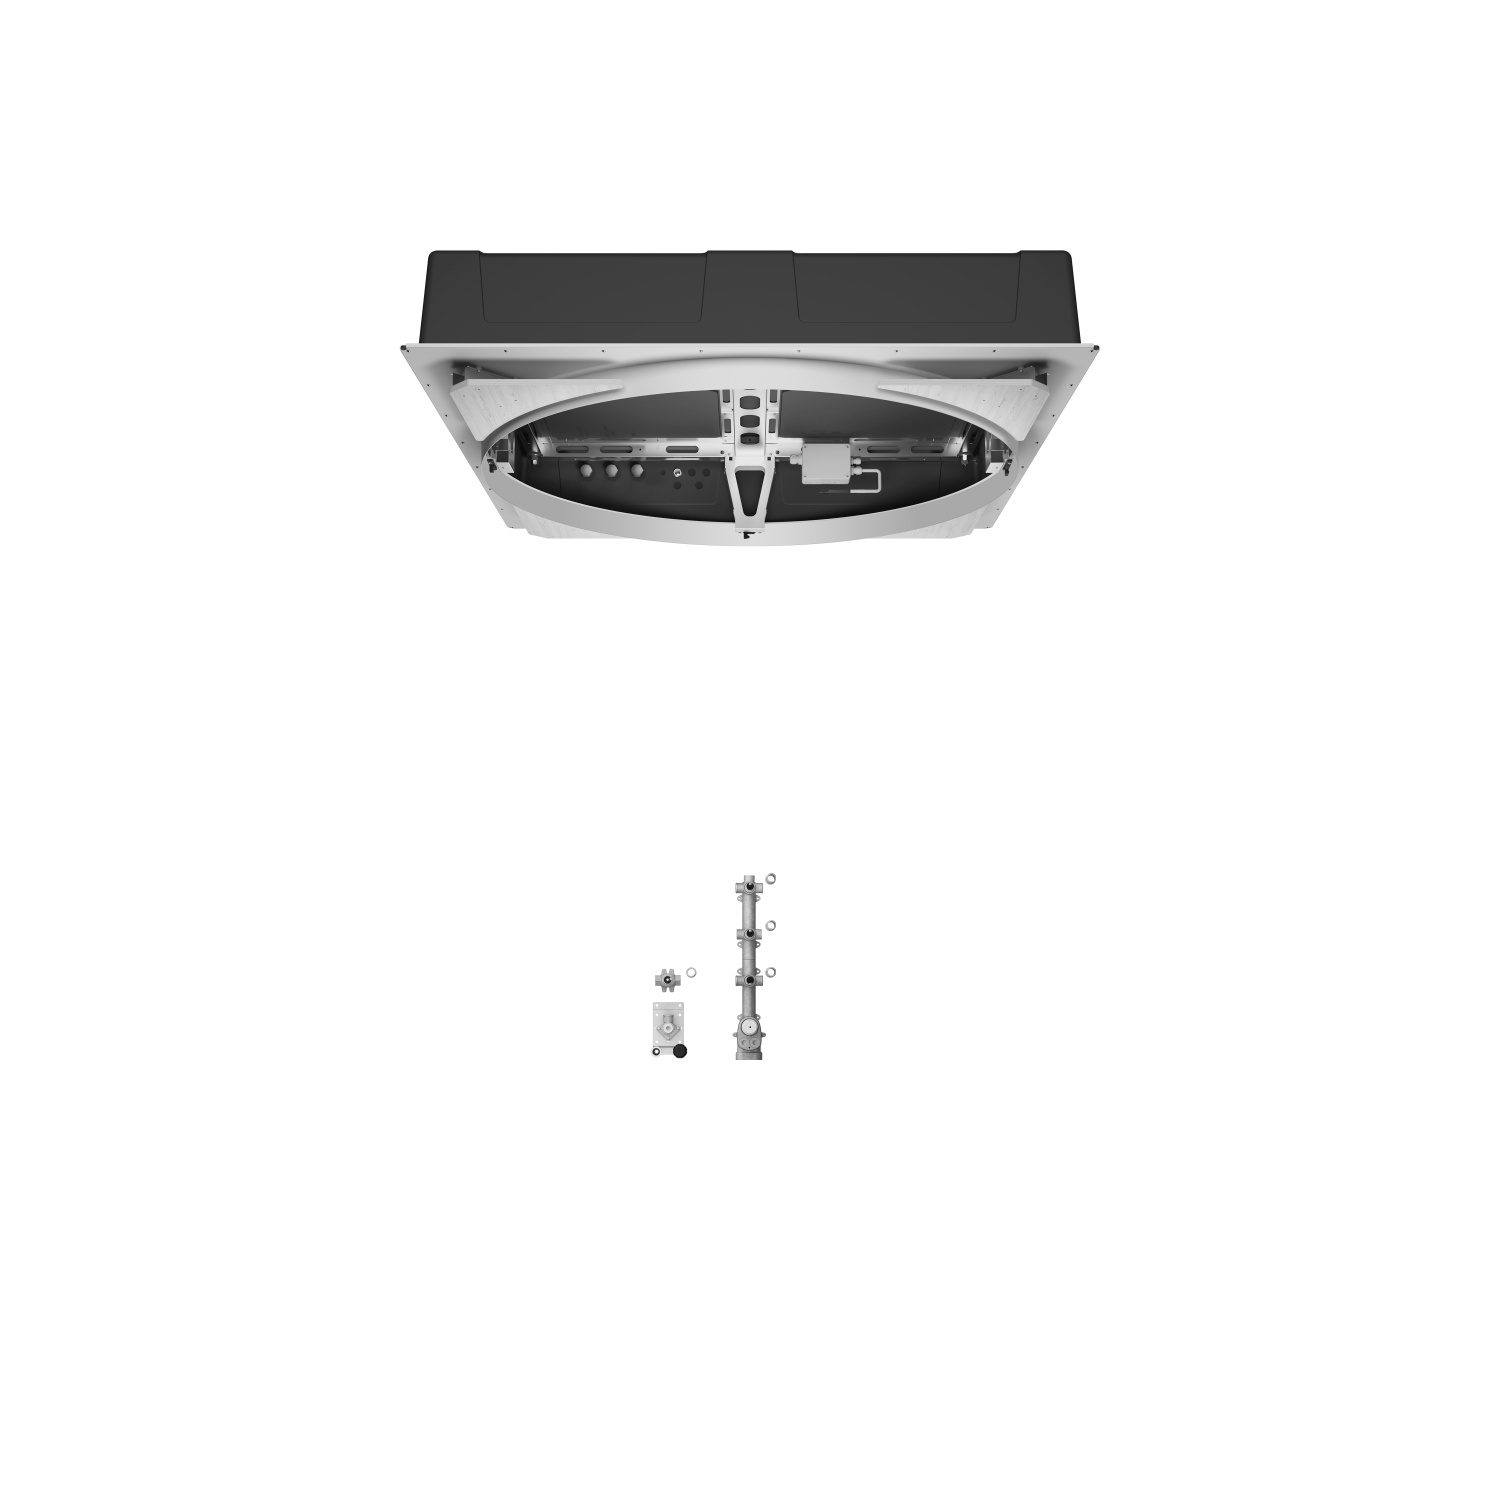 AQUAMOON Experience Shower - - 35 600 970 90